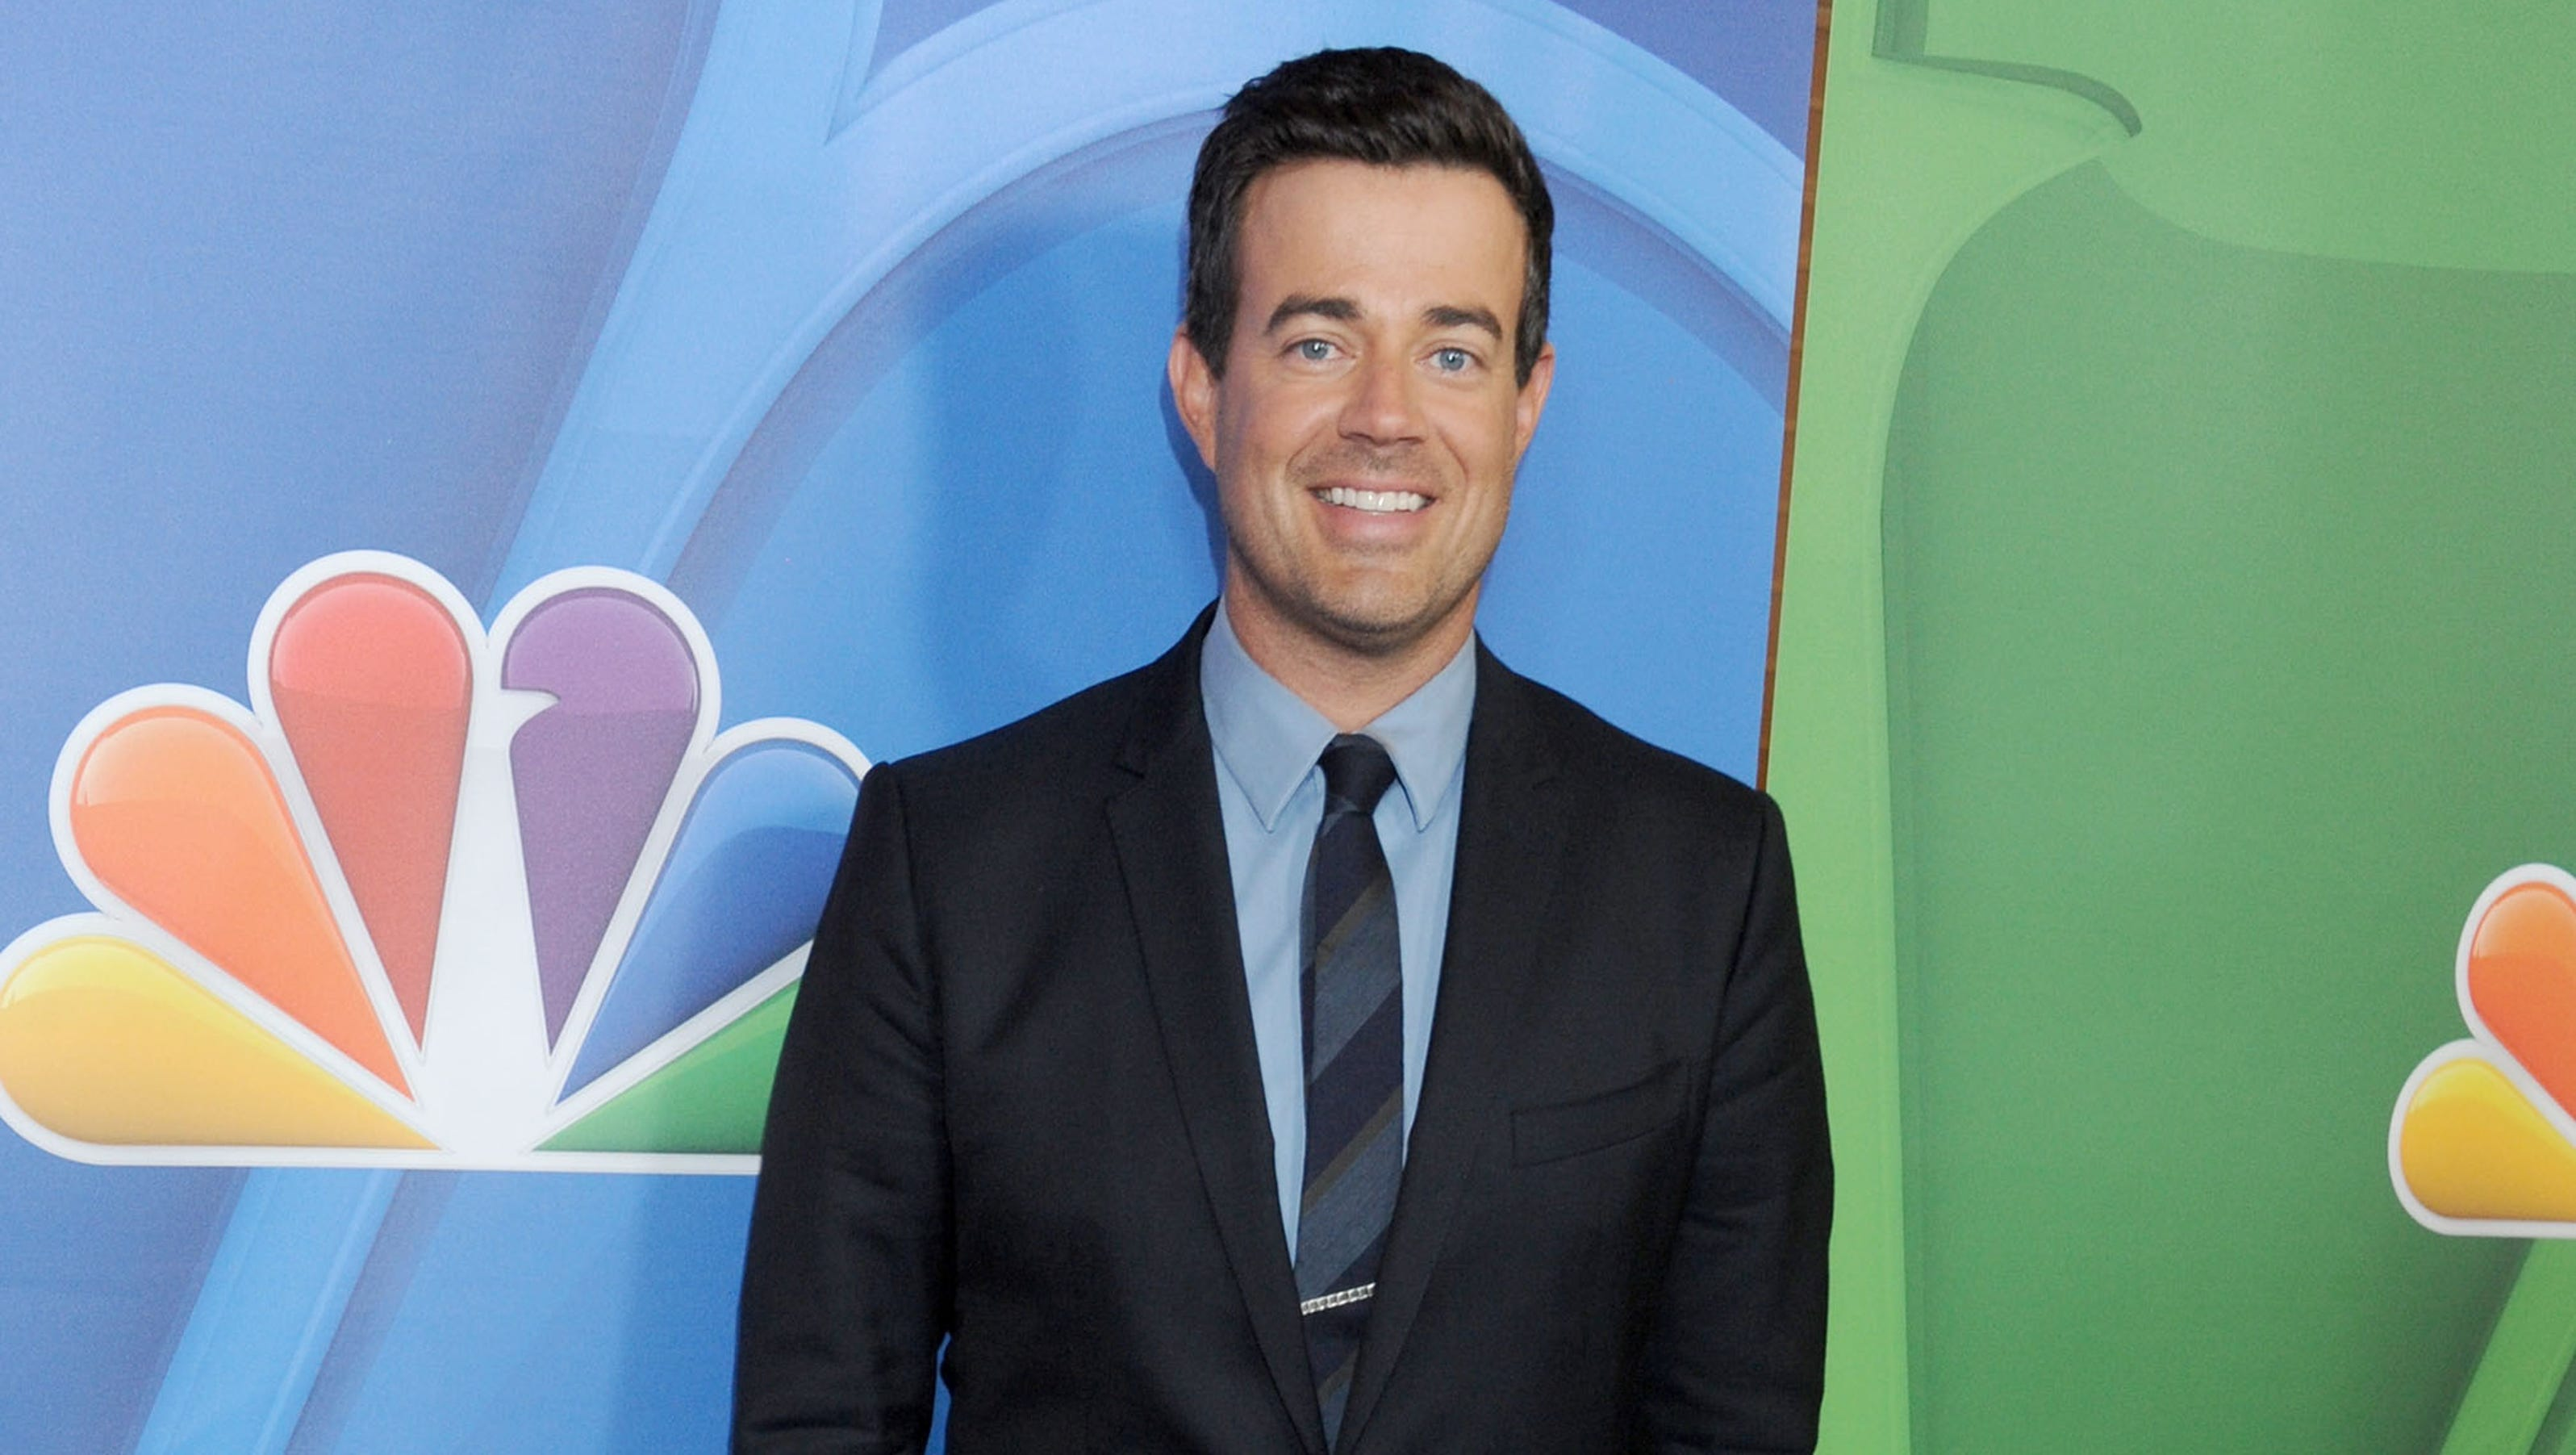 Carson Daly Pinterest: Carson Daly Joins 'Today' Show Team